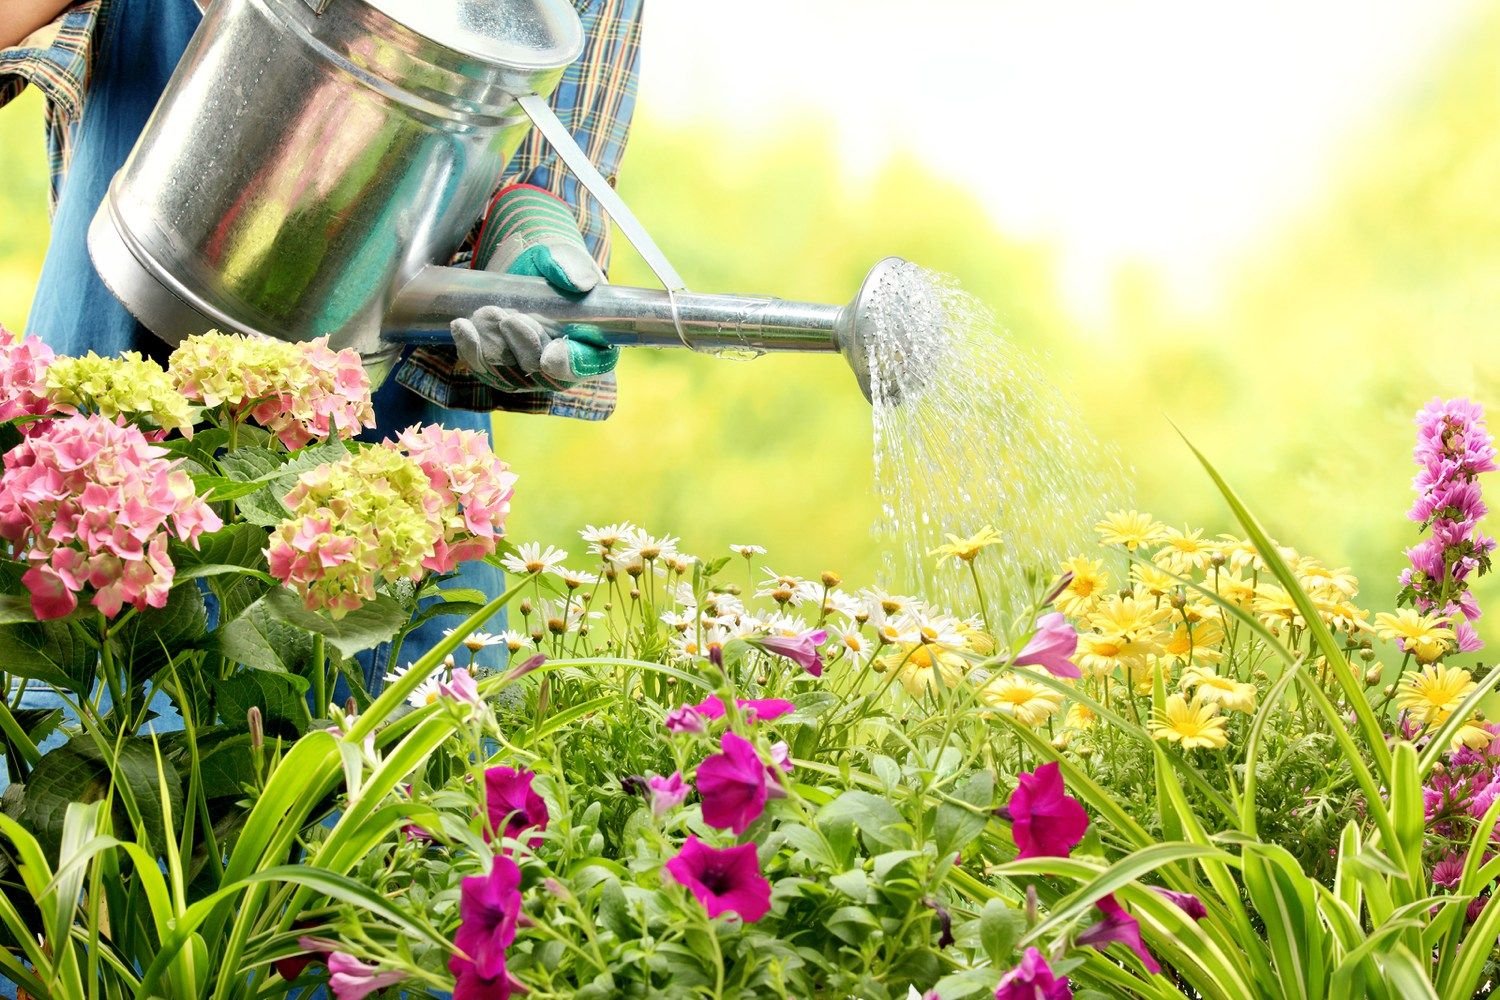 If you're still using a good old fashioned watering can to tend to your garden, then you are already one step ahead of the game for fall home preparations